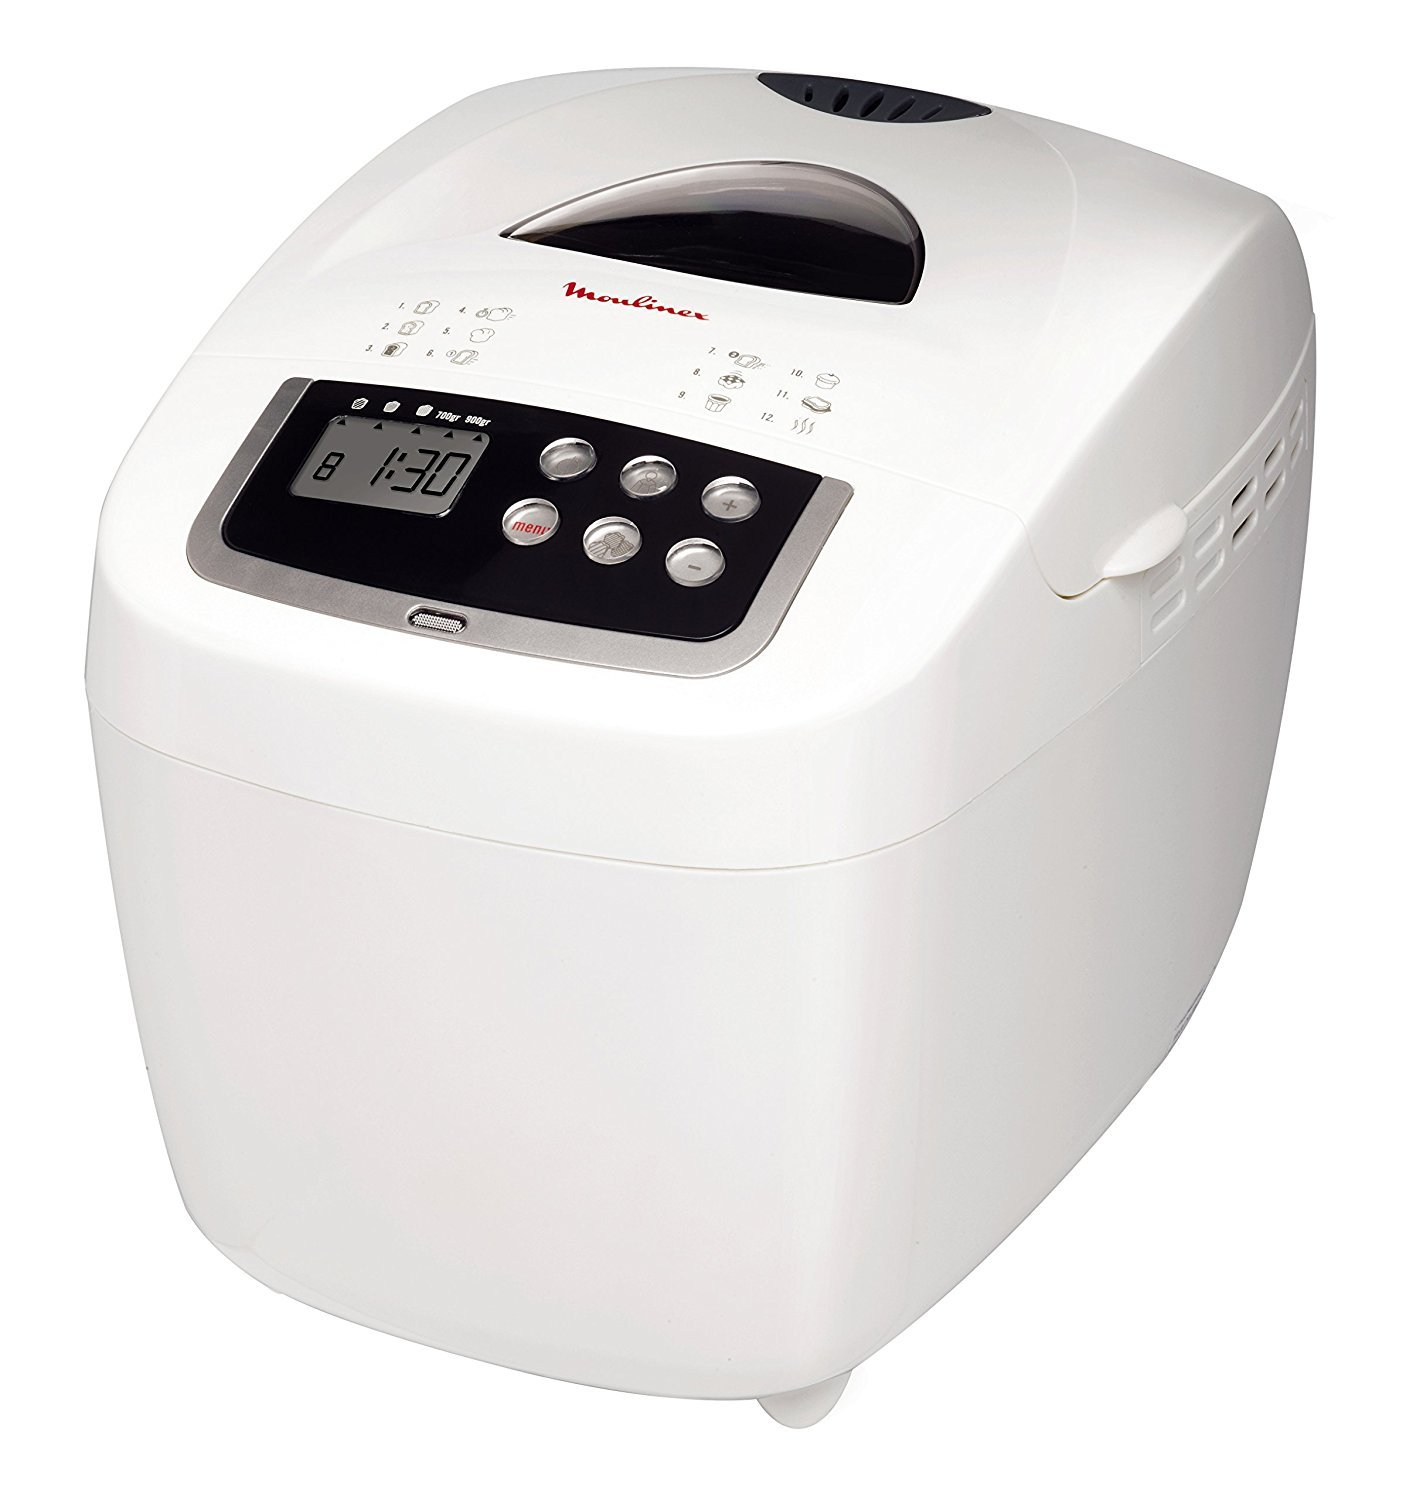 Moulinex OW1101 600W Color blanco - Panificadora (Color blanco, 15 h, 600 W)